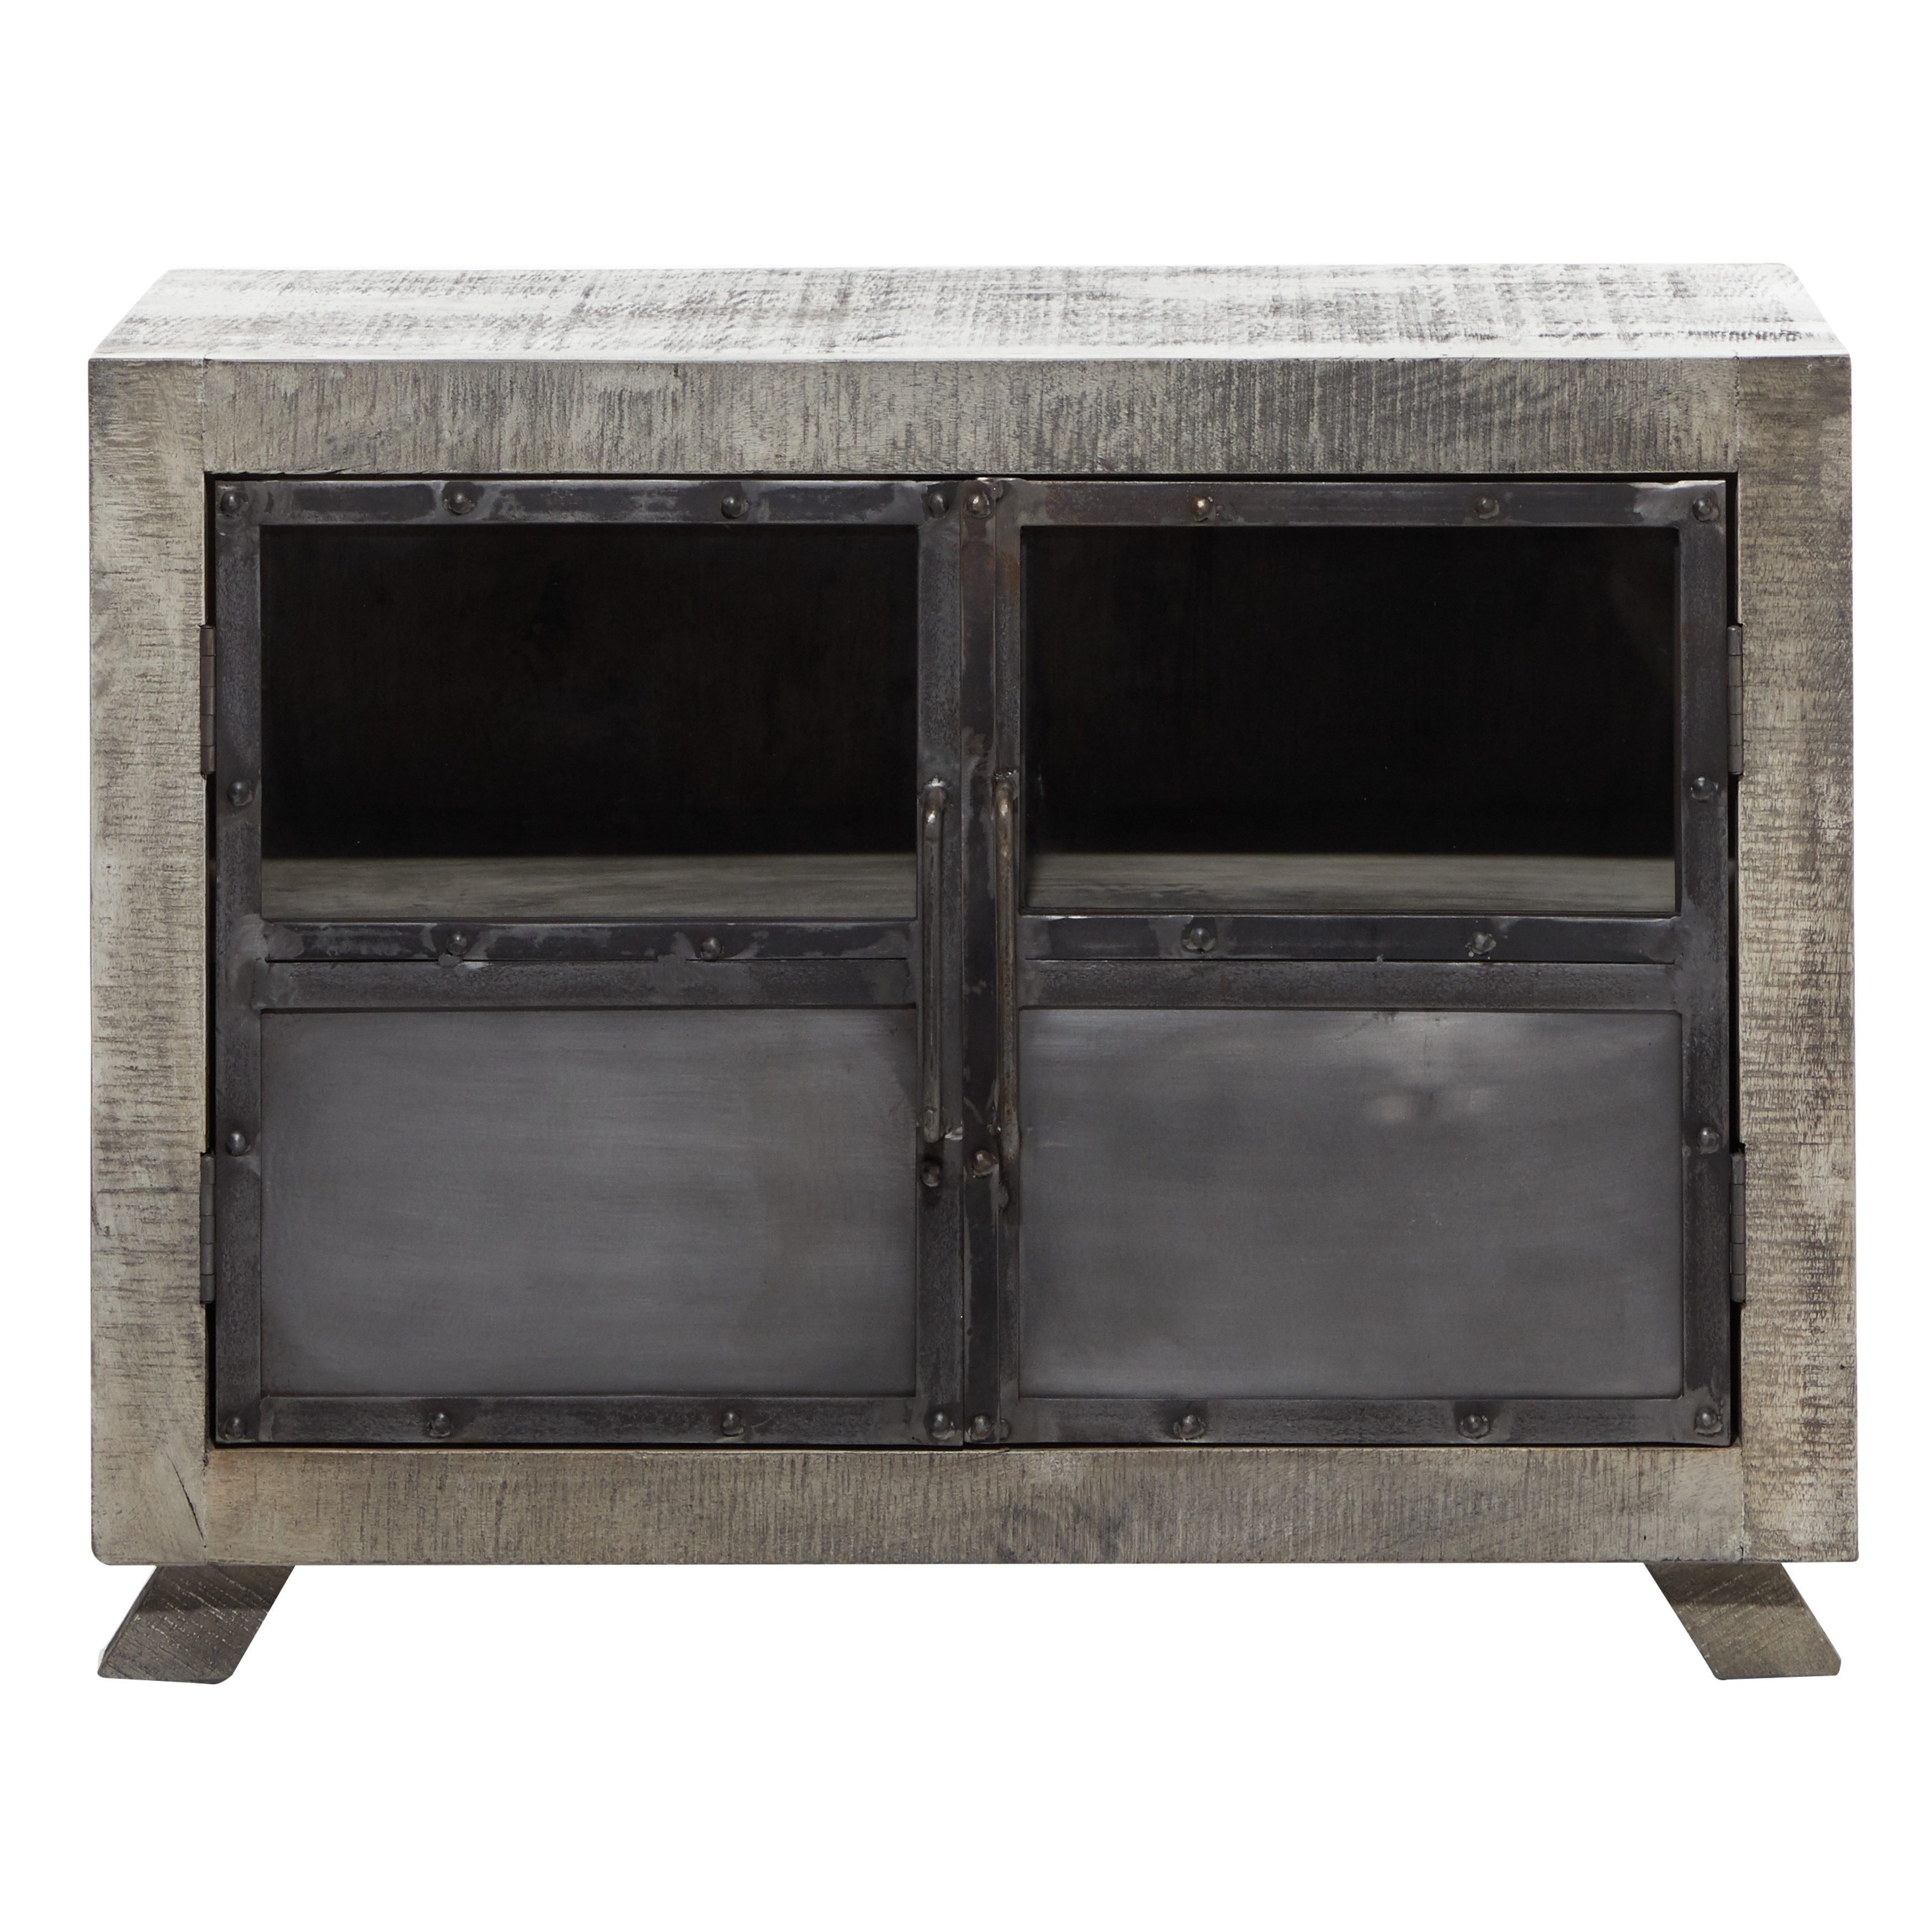 Shop Black Friday Deals On Large Wood Kitchen Cabinet W Vintage Style Doors And Distressed Grey Finish 37 X28 37 X 20 X 28 On Sale Overstock 32133972